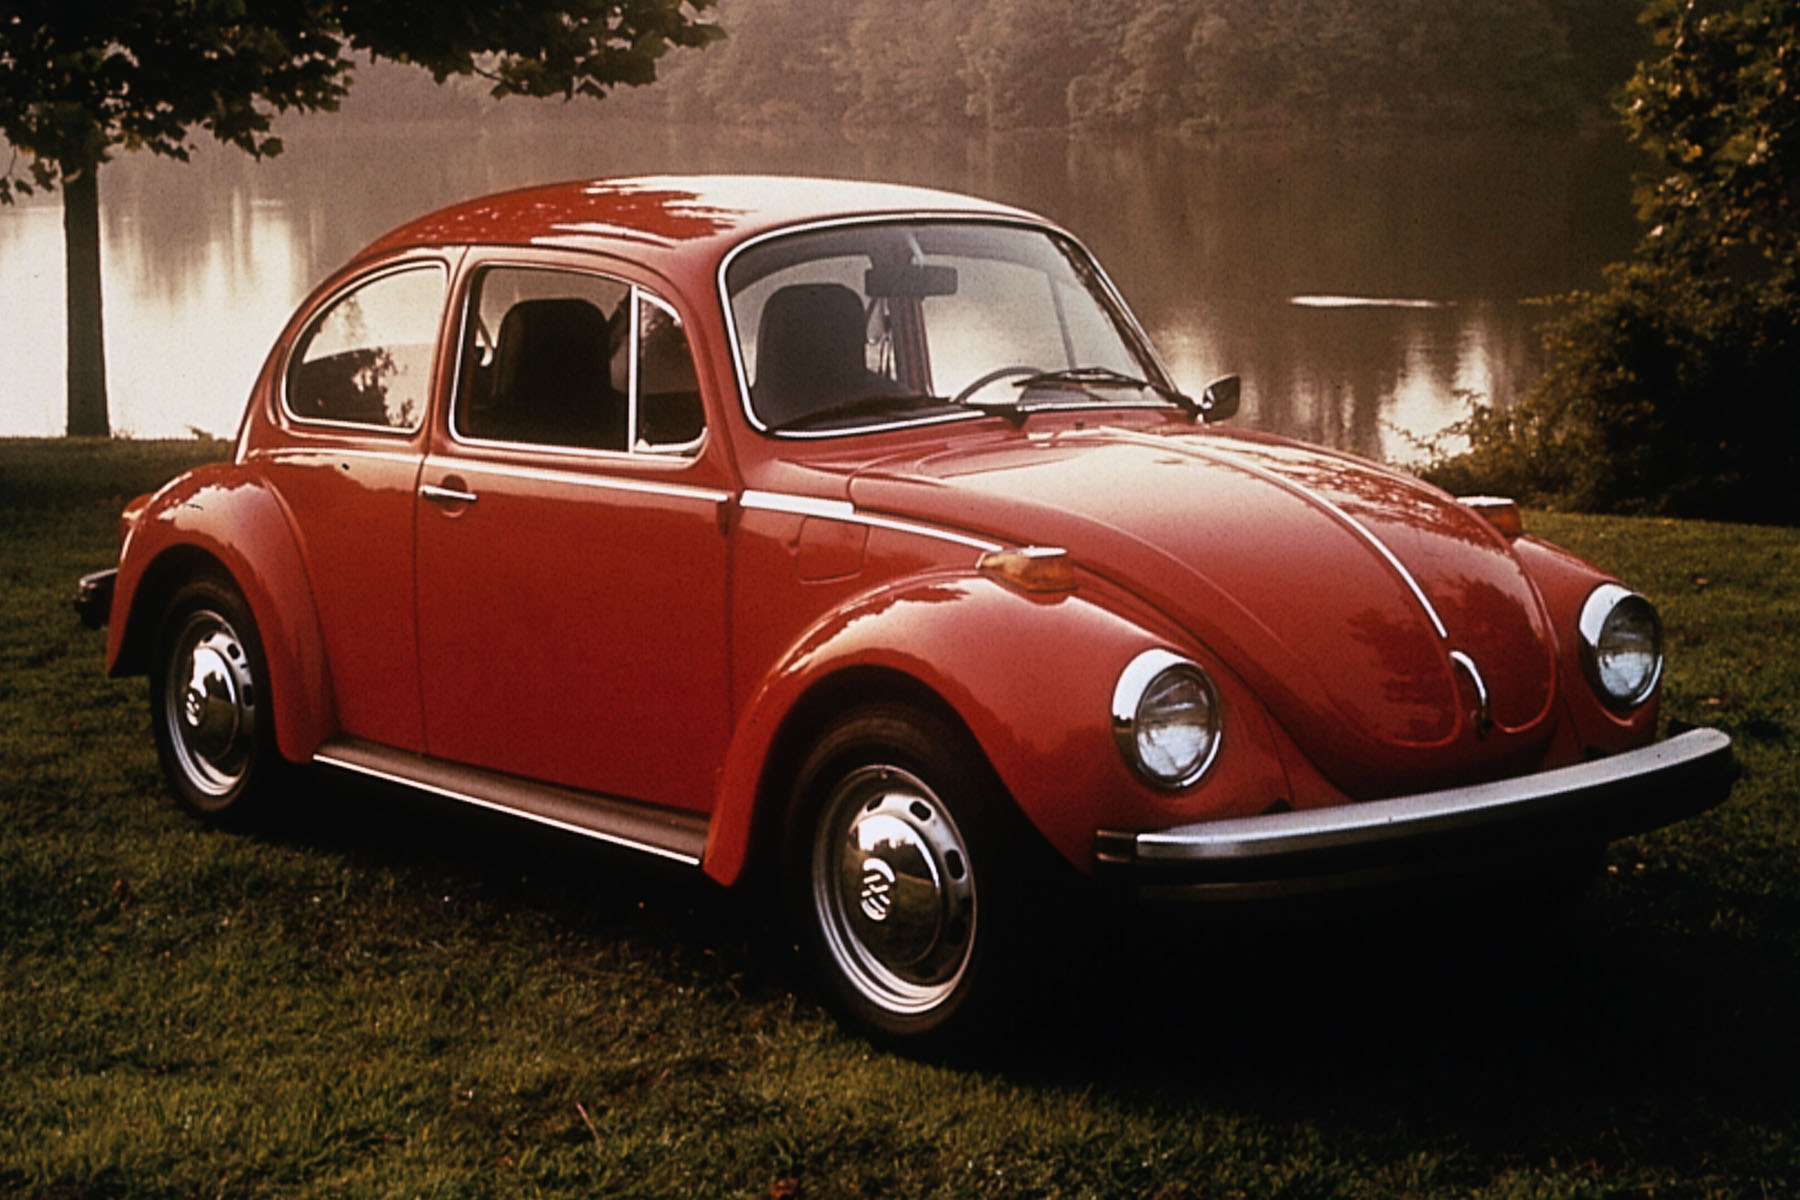 volkswagen beetle images beetle ☺♥ hd wallpaper and background